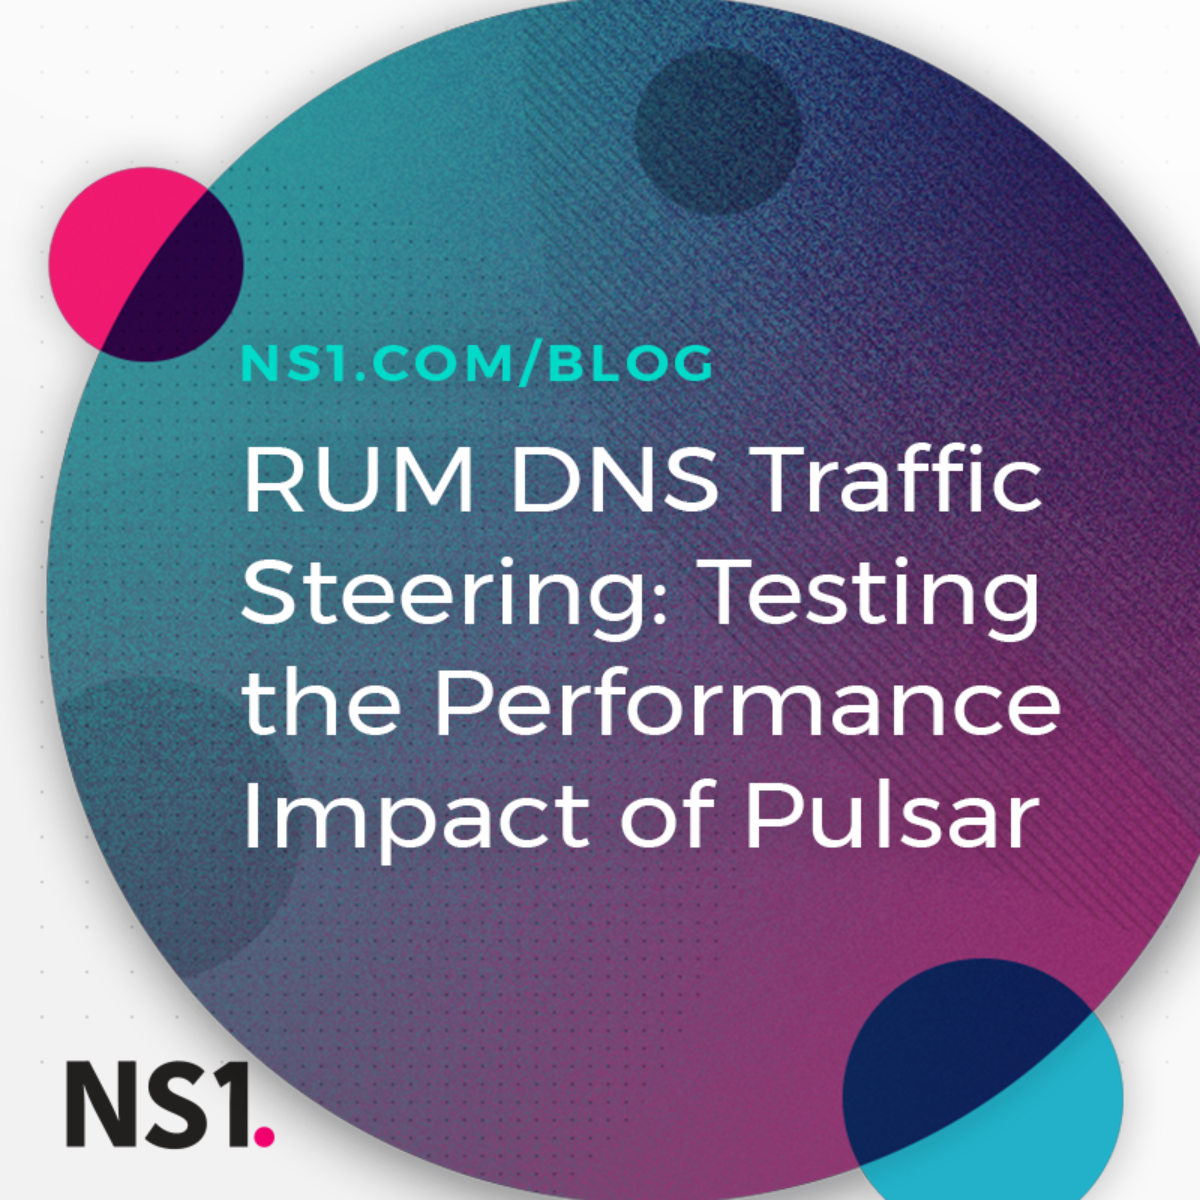 The RUM DNS Traffic Steering Experiment | NS1 Blog